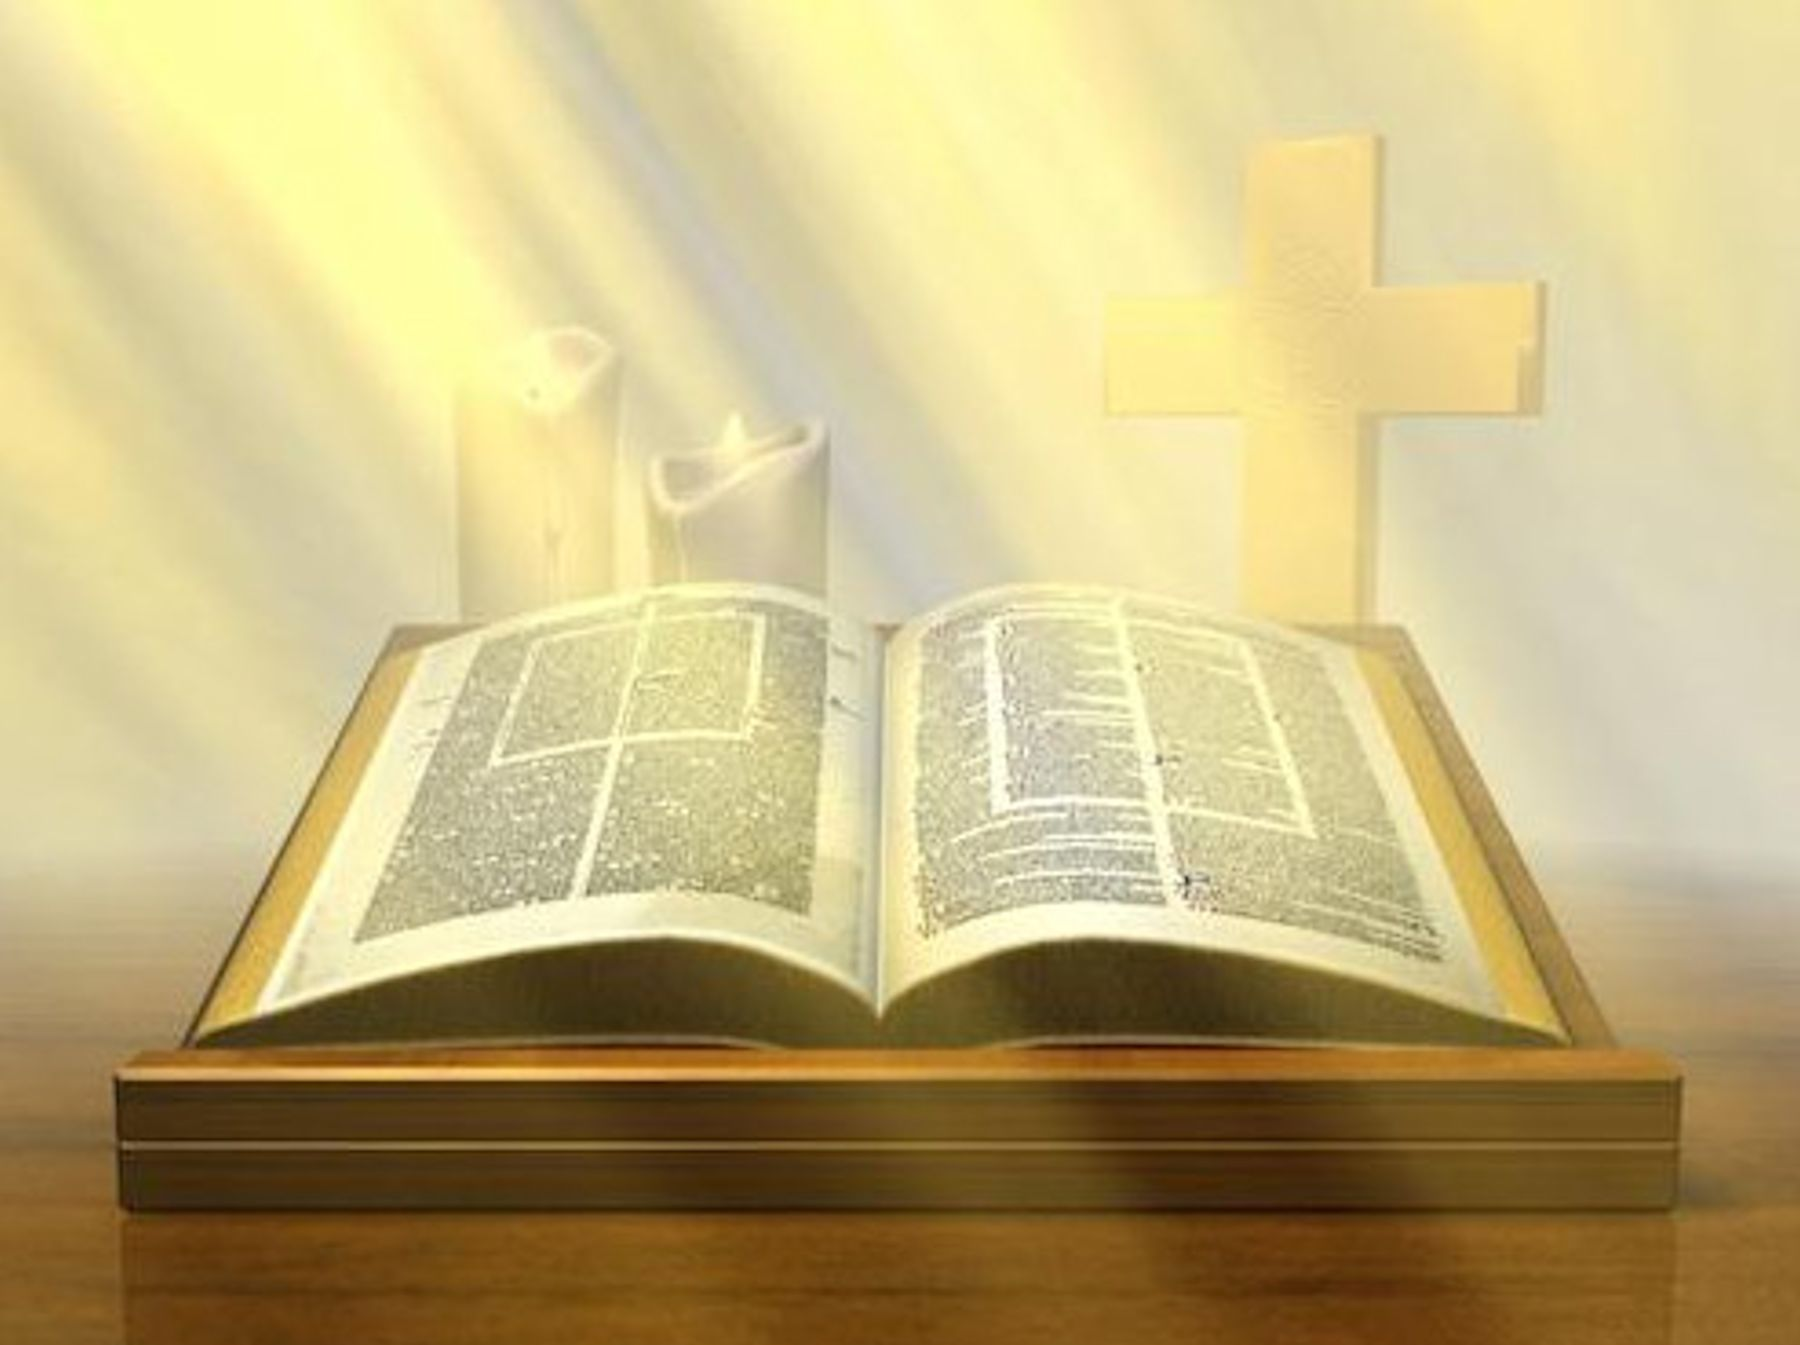 bible literacy project Standards, legislation, and curriculum materials for teaching bible literacy in texas.